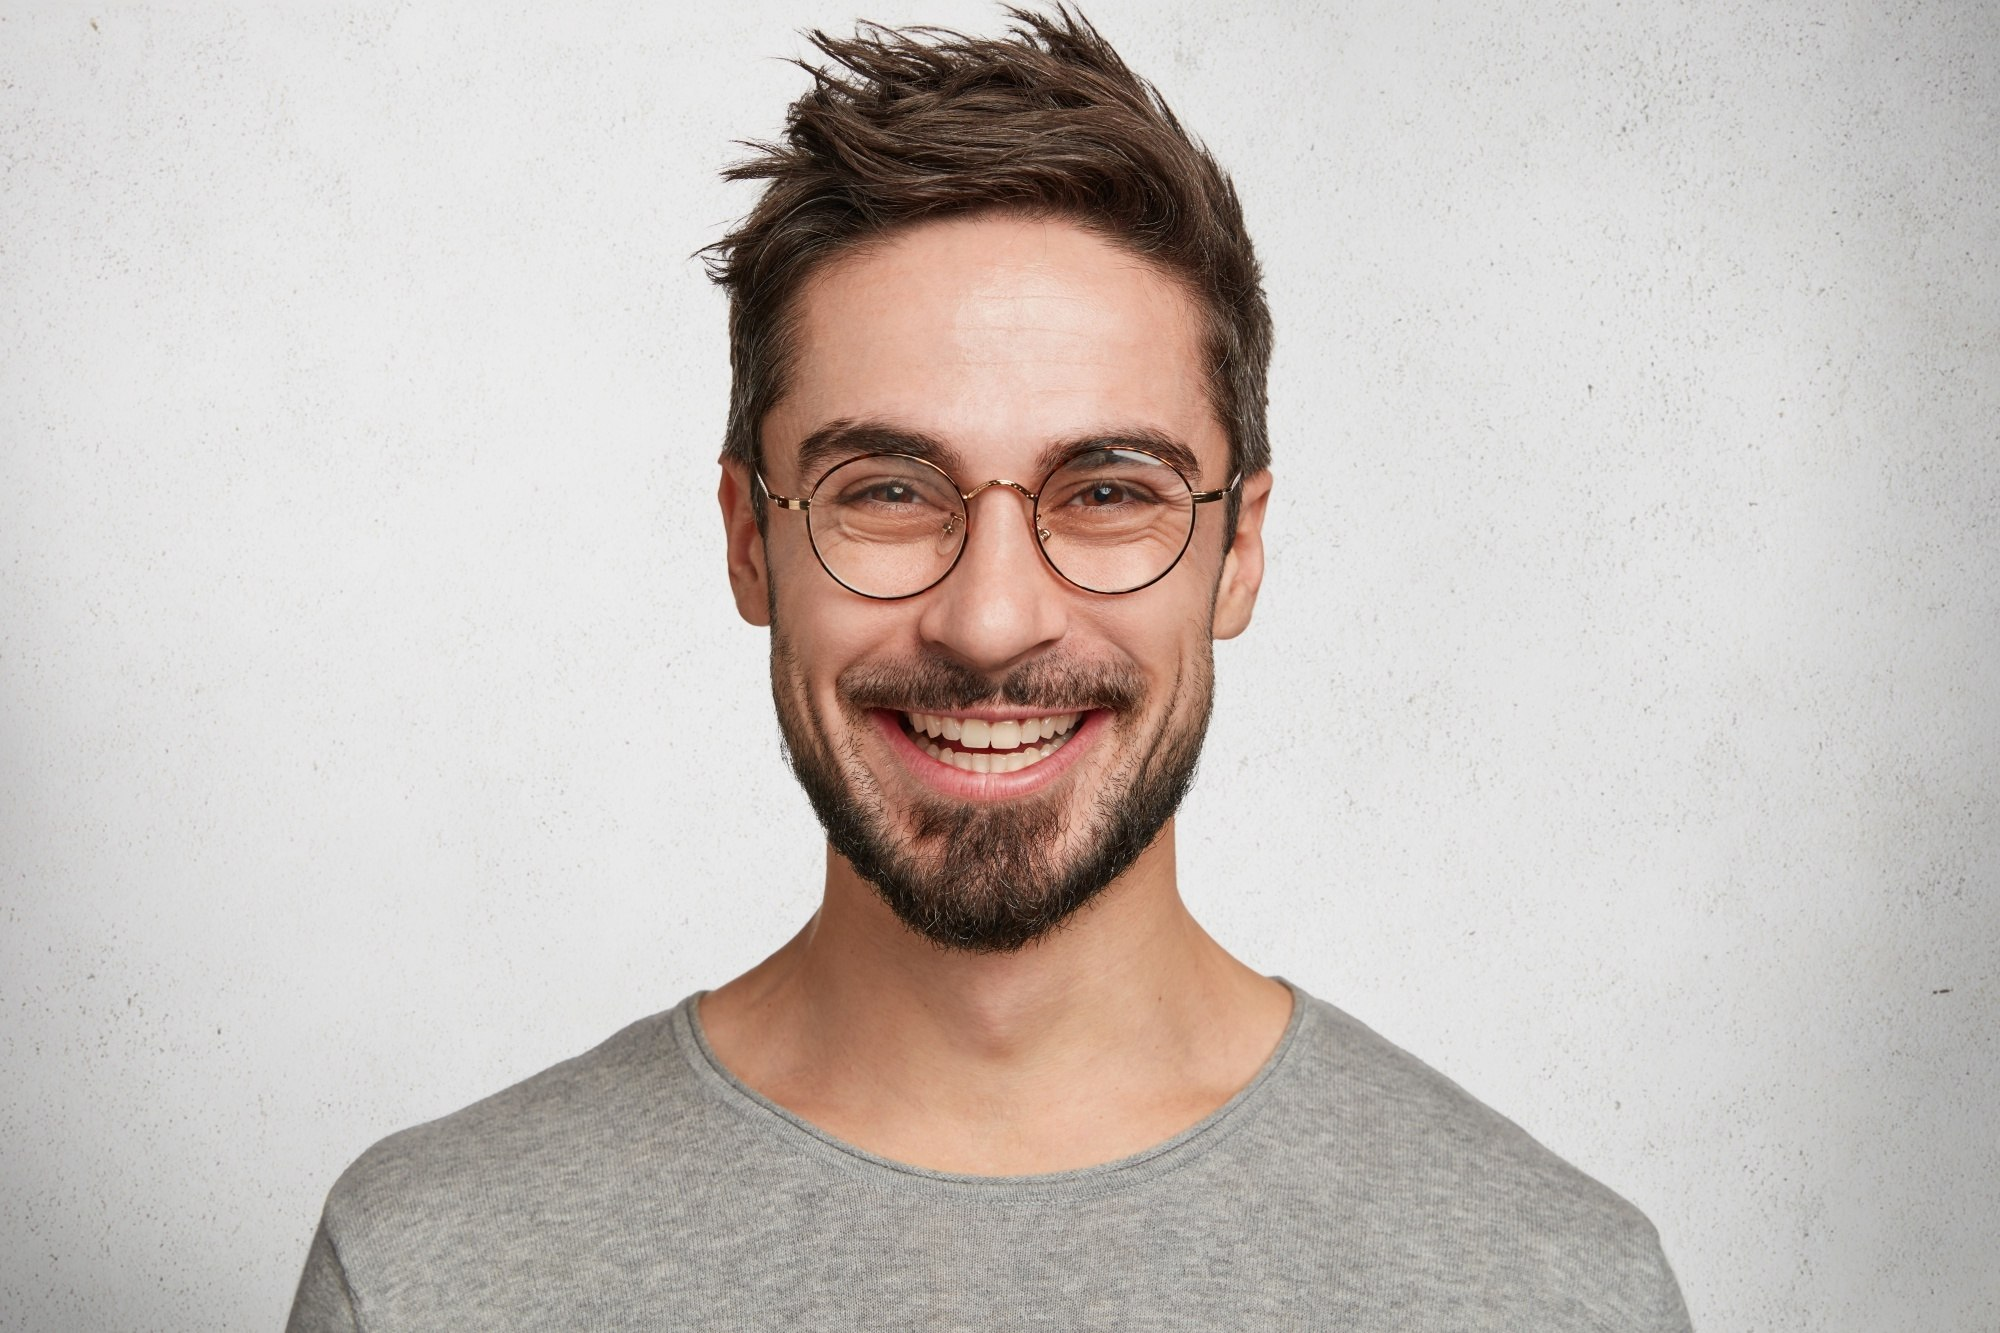 Messy hairstyles men: Closeup shot of a man with short brown messy hair and mustache wearing eyeglasses